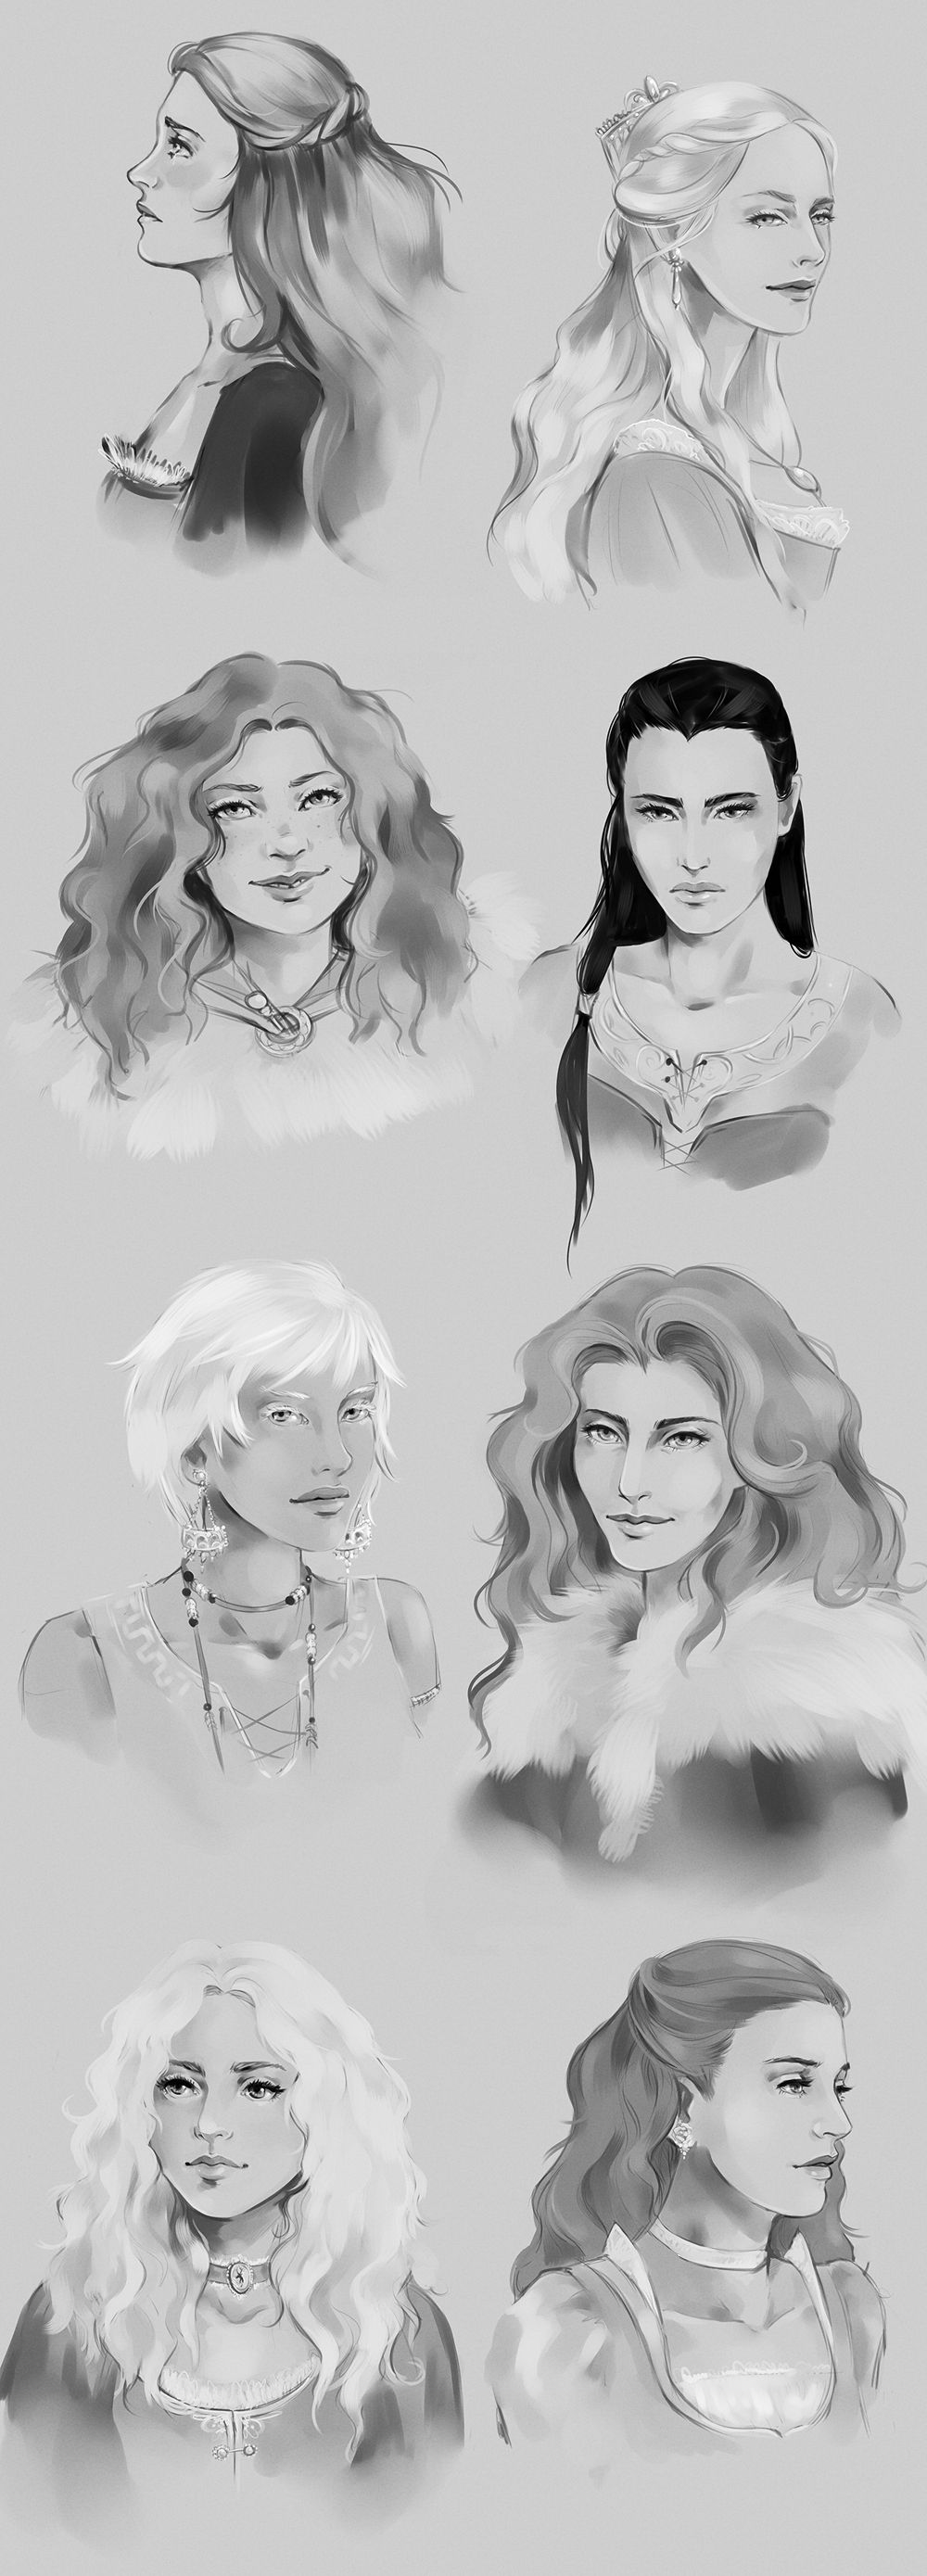 ASoIaF Girls Sketchdump by fee-absinthe on DeviantArt